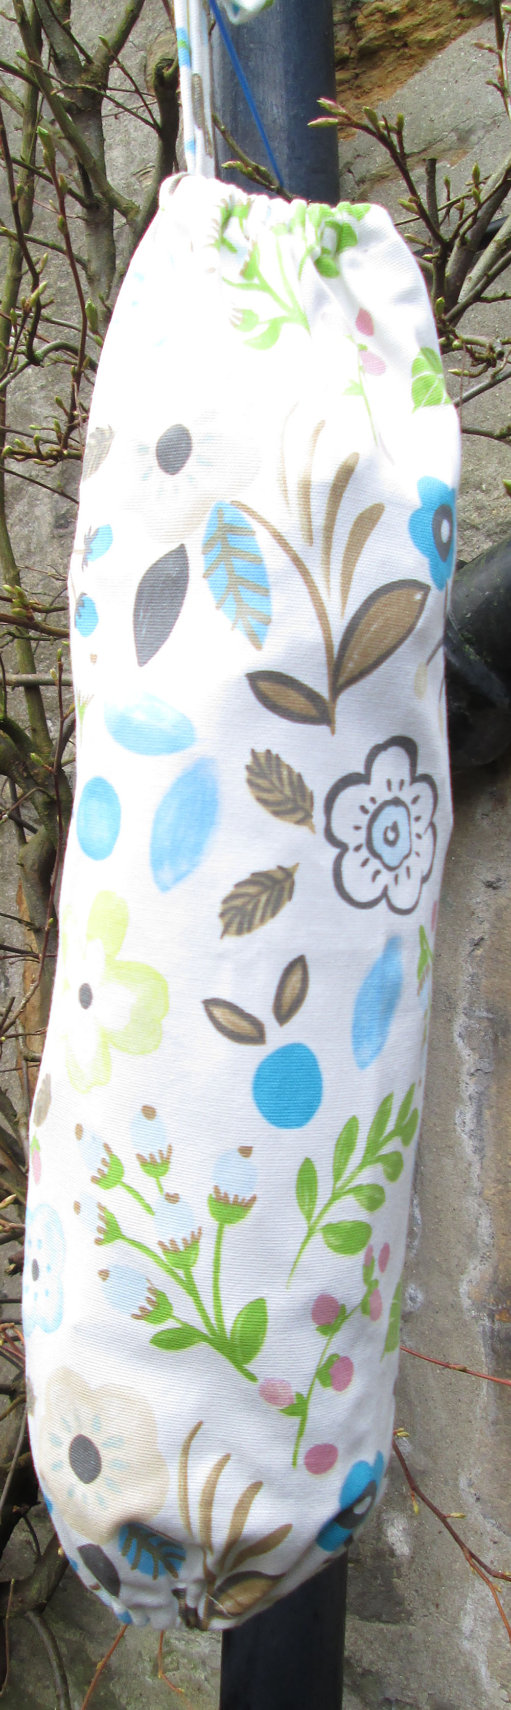 Woodland Flowers Carrier Bag Holder